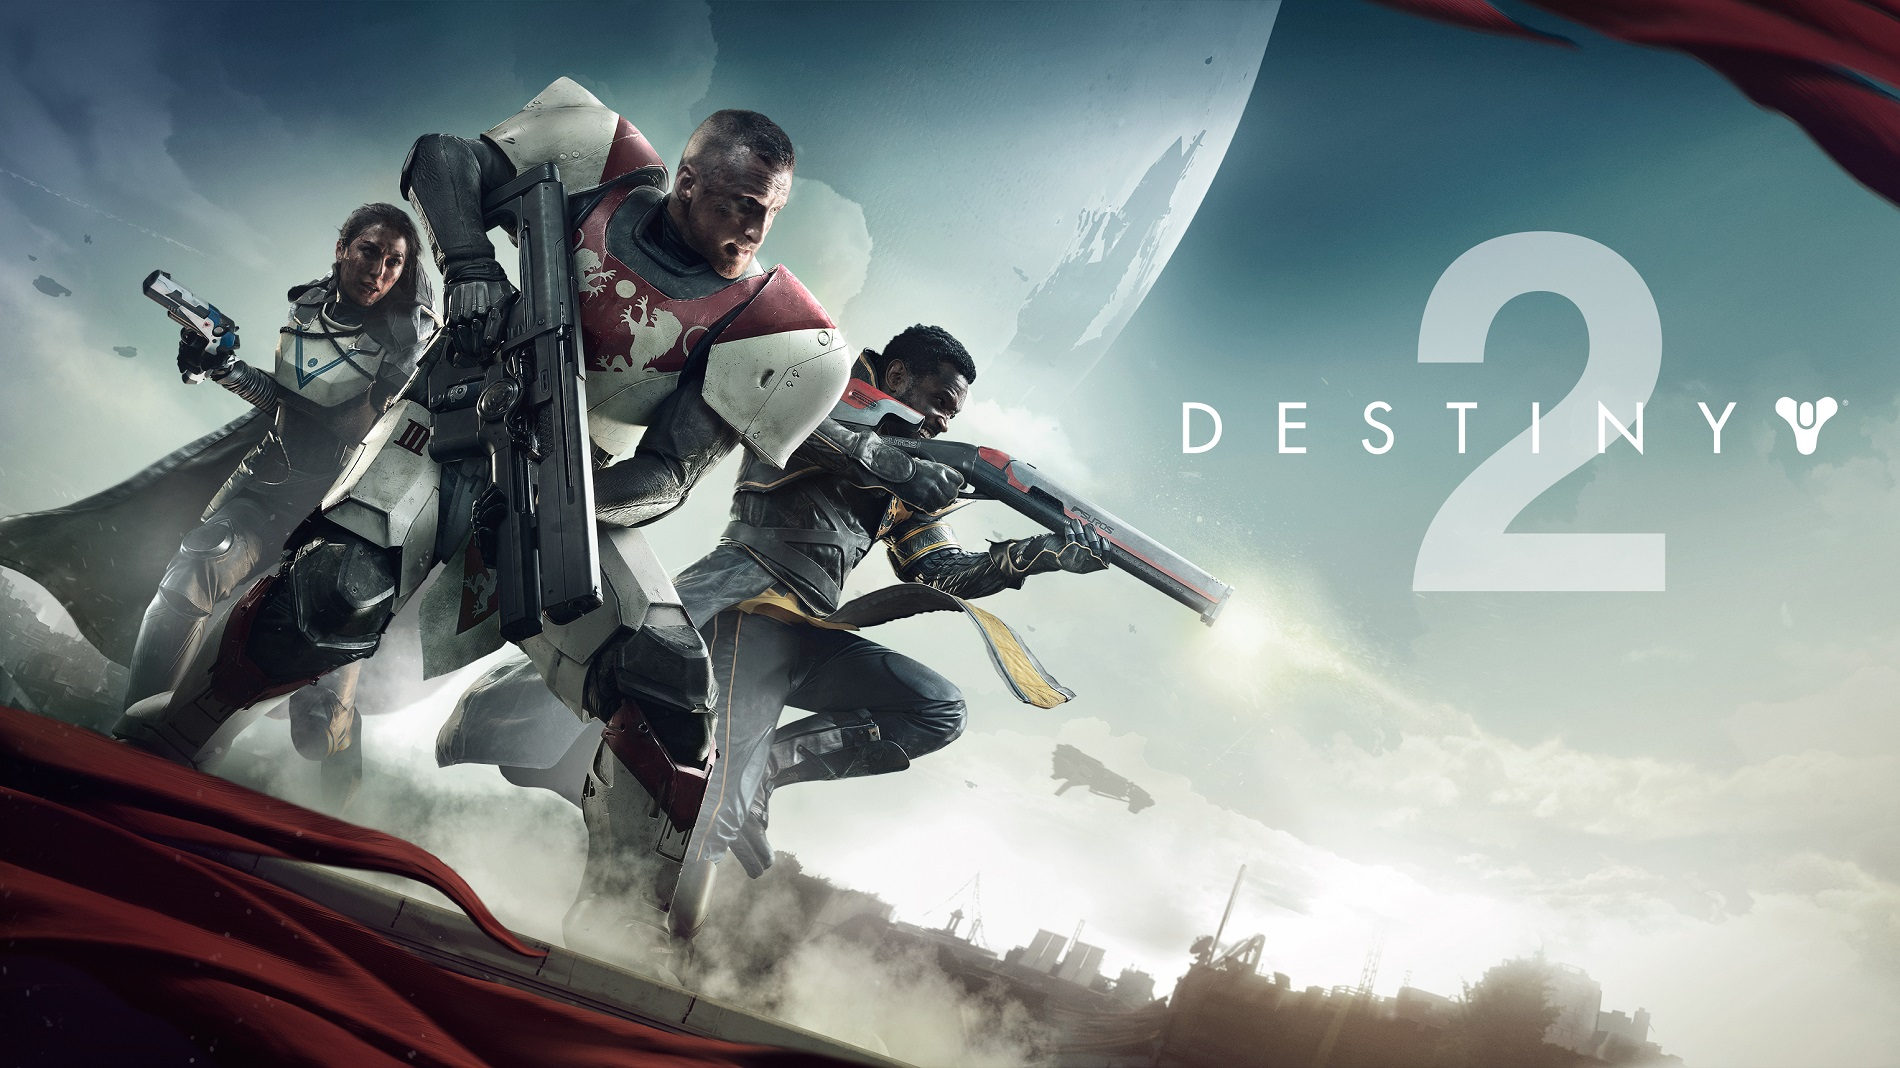 Destiny 2 Nvidia voucher Battle.net RU/CIS key